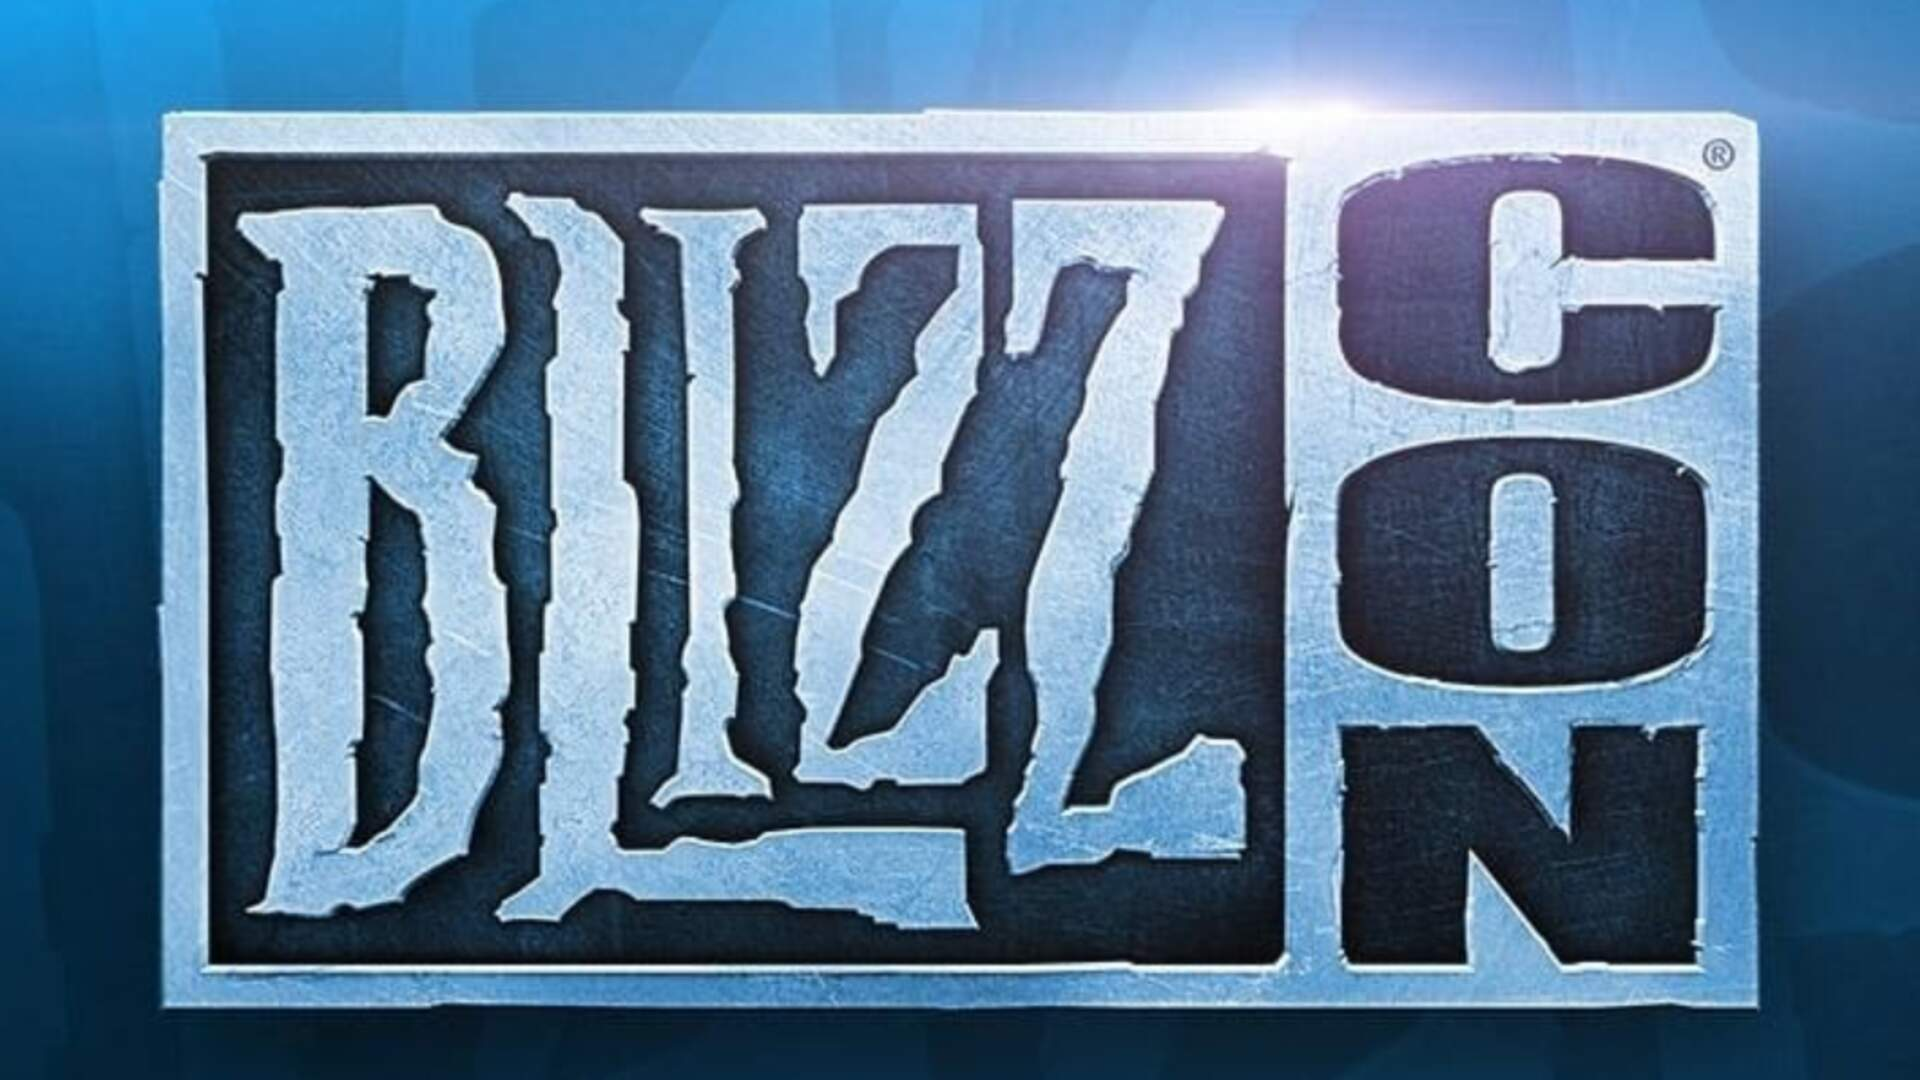 BlizzCon 2018 Dates Announced, Here's When Tickets Go On Sale